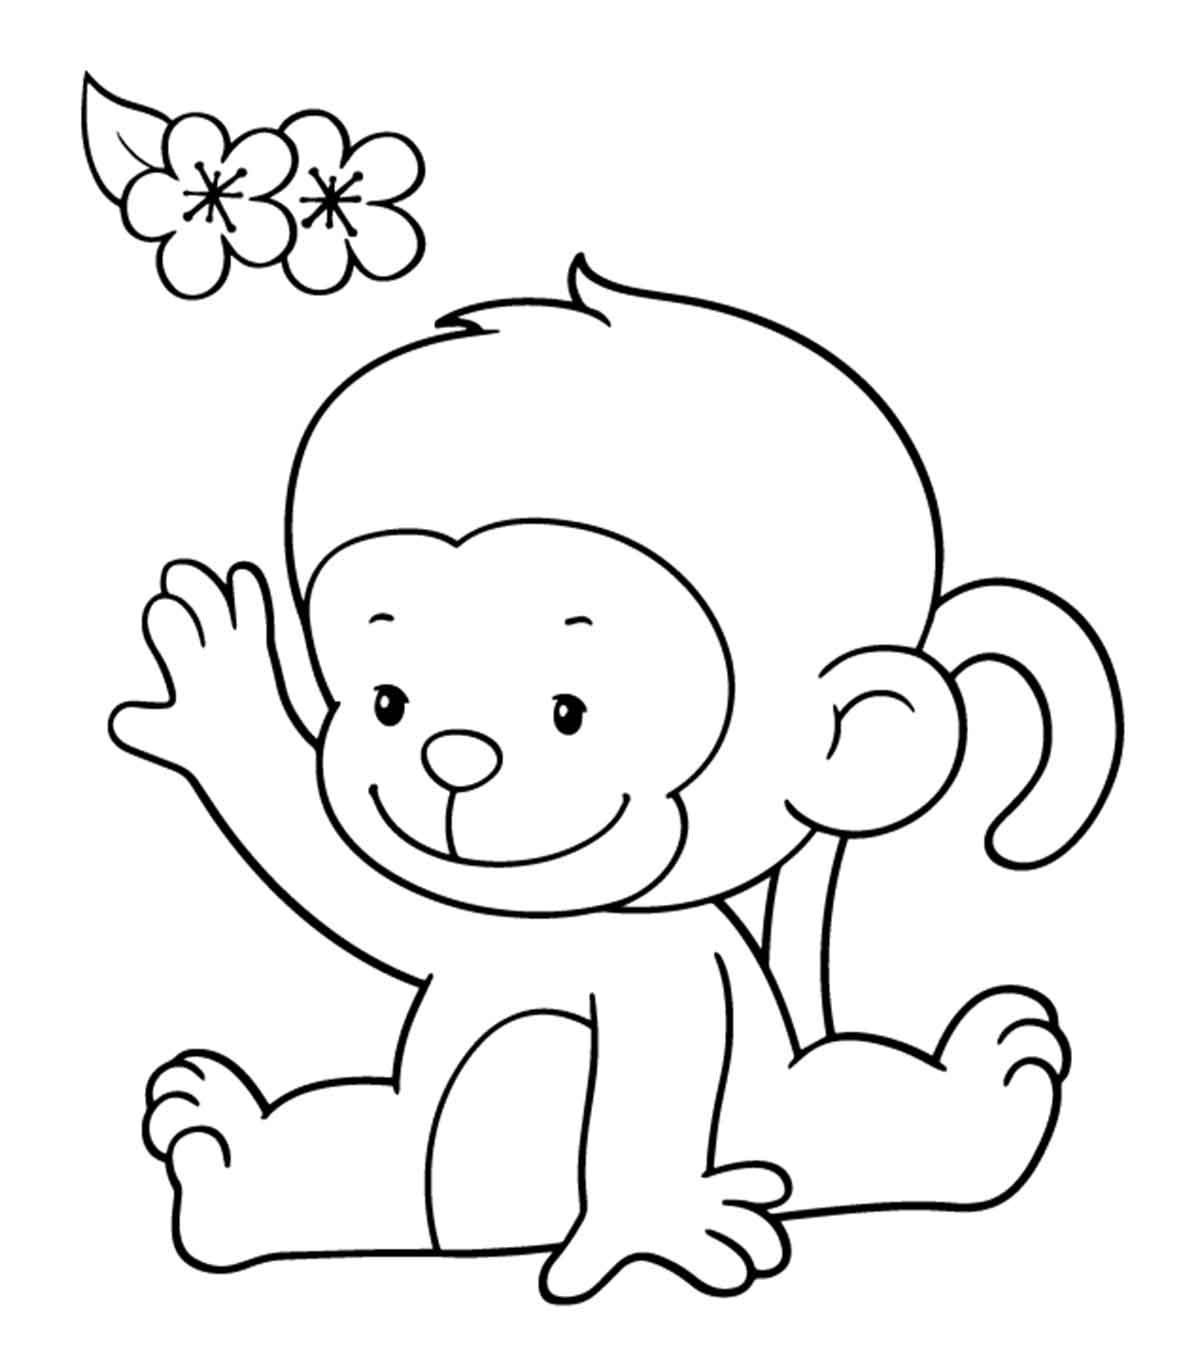 Coloring Page Cartoon Gorilla Stock Vector - Illustration of ... | 1350x1200